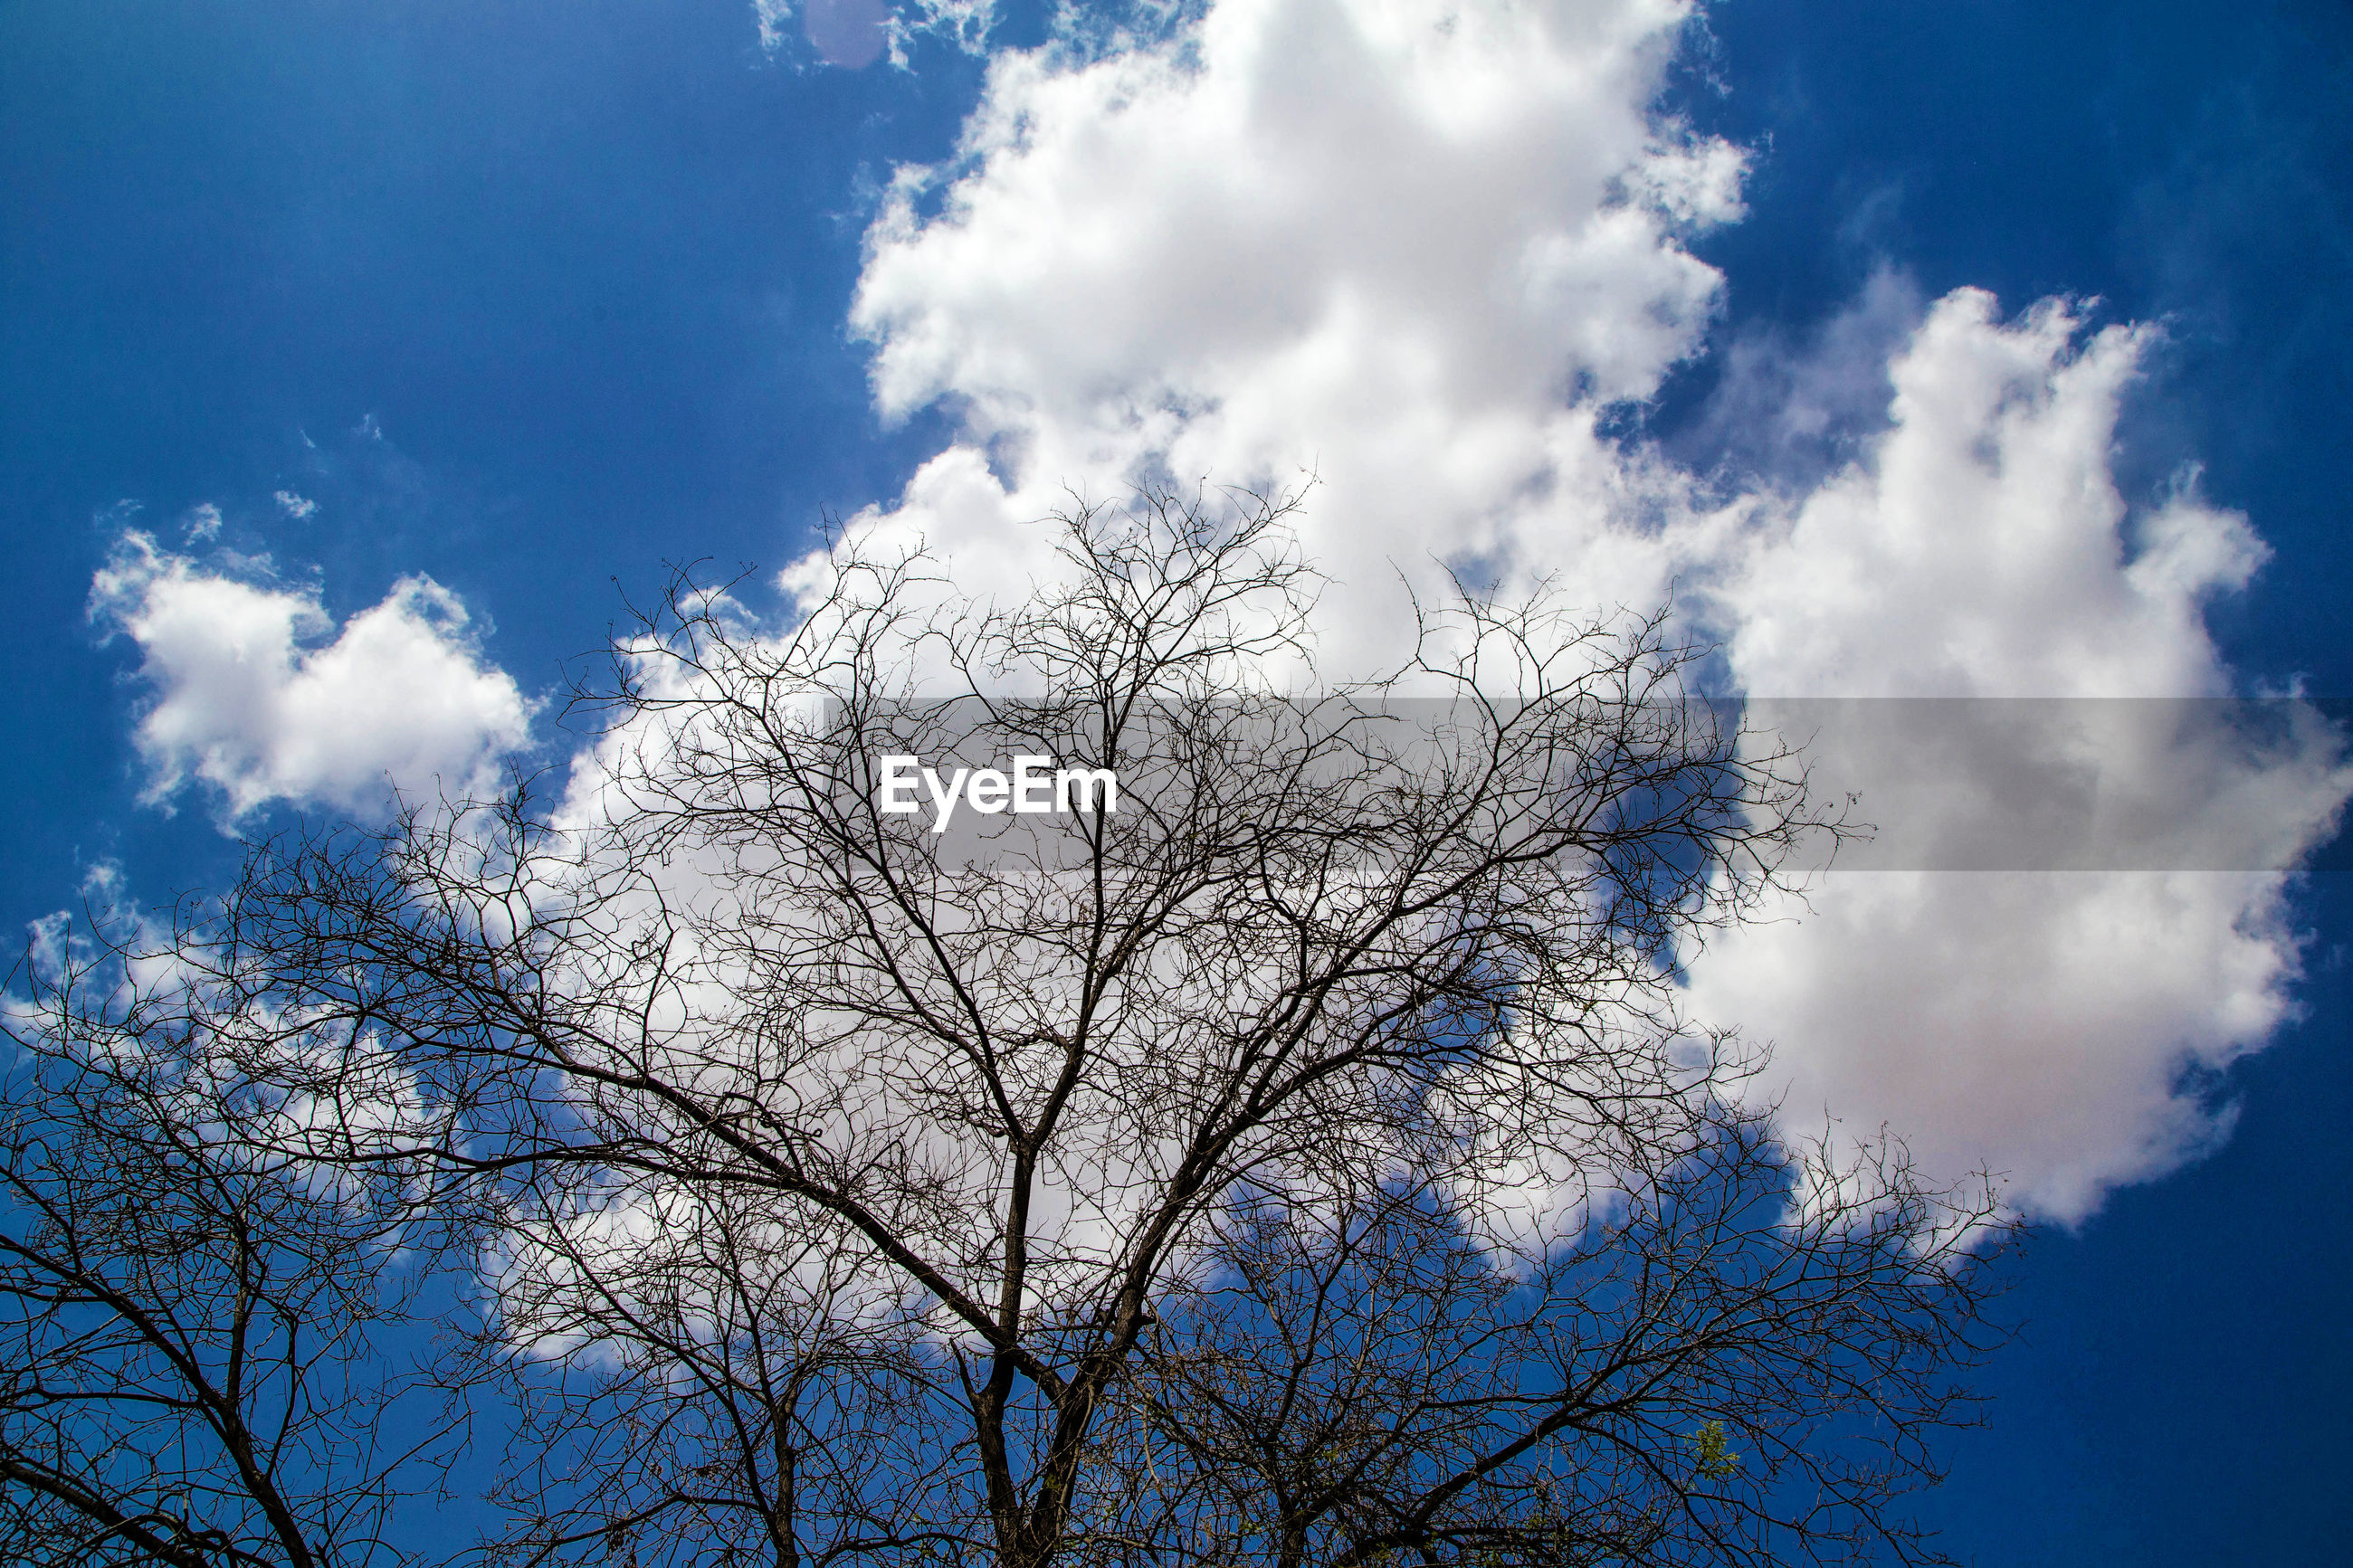 sky, low angle view, beauty in nature, tree, nature, cloud - sky, day, branch, outdoors, no people, blue, tranquility, bare tree, scenics, growth, flower